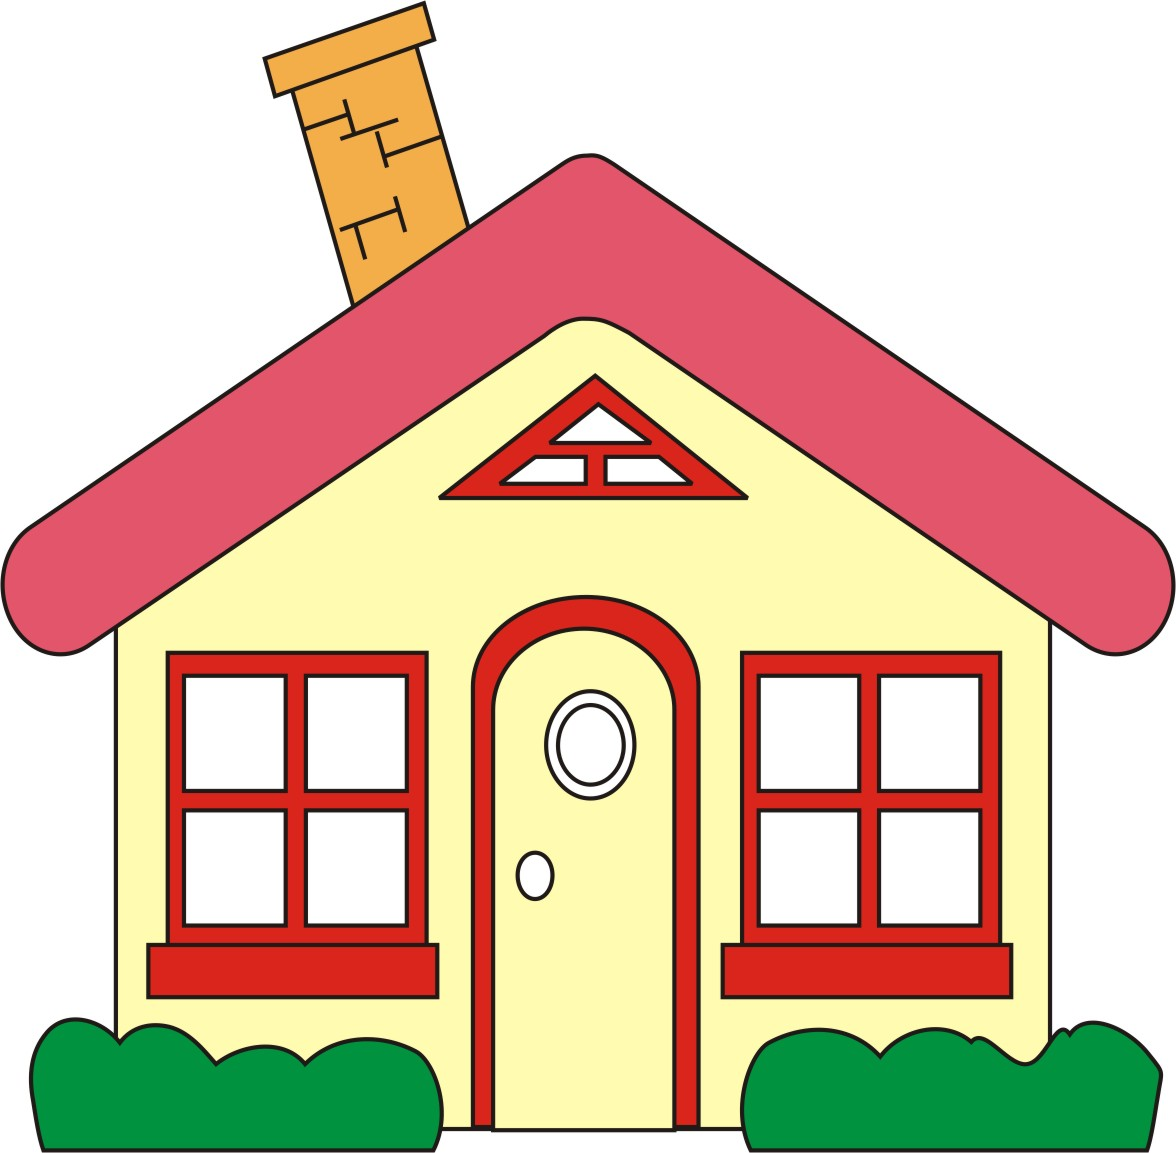 Top house clip art free clipart image